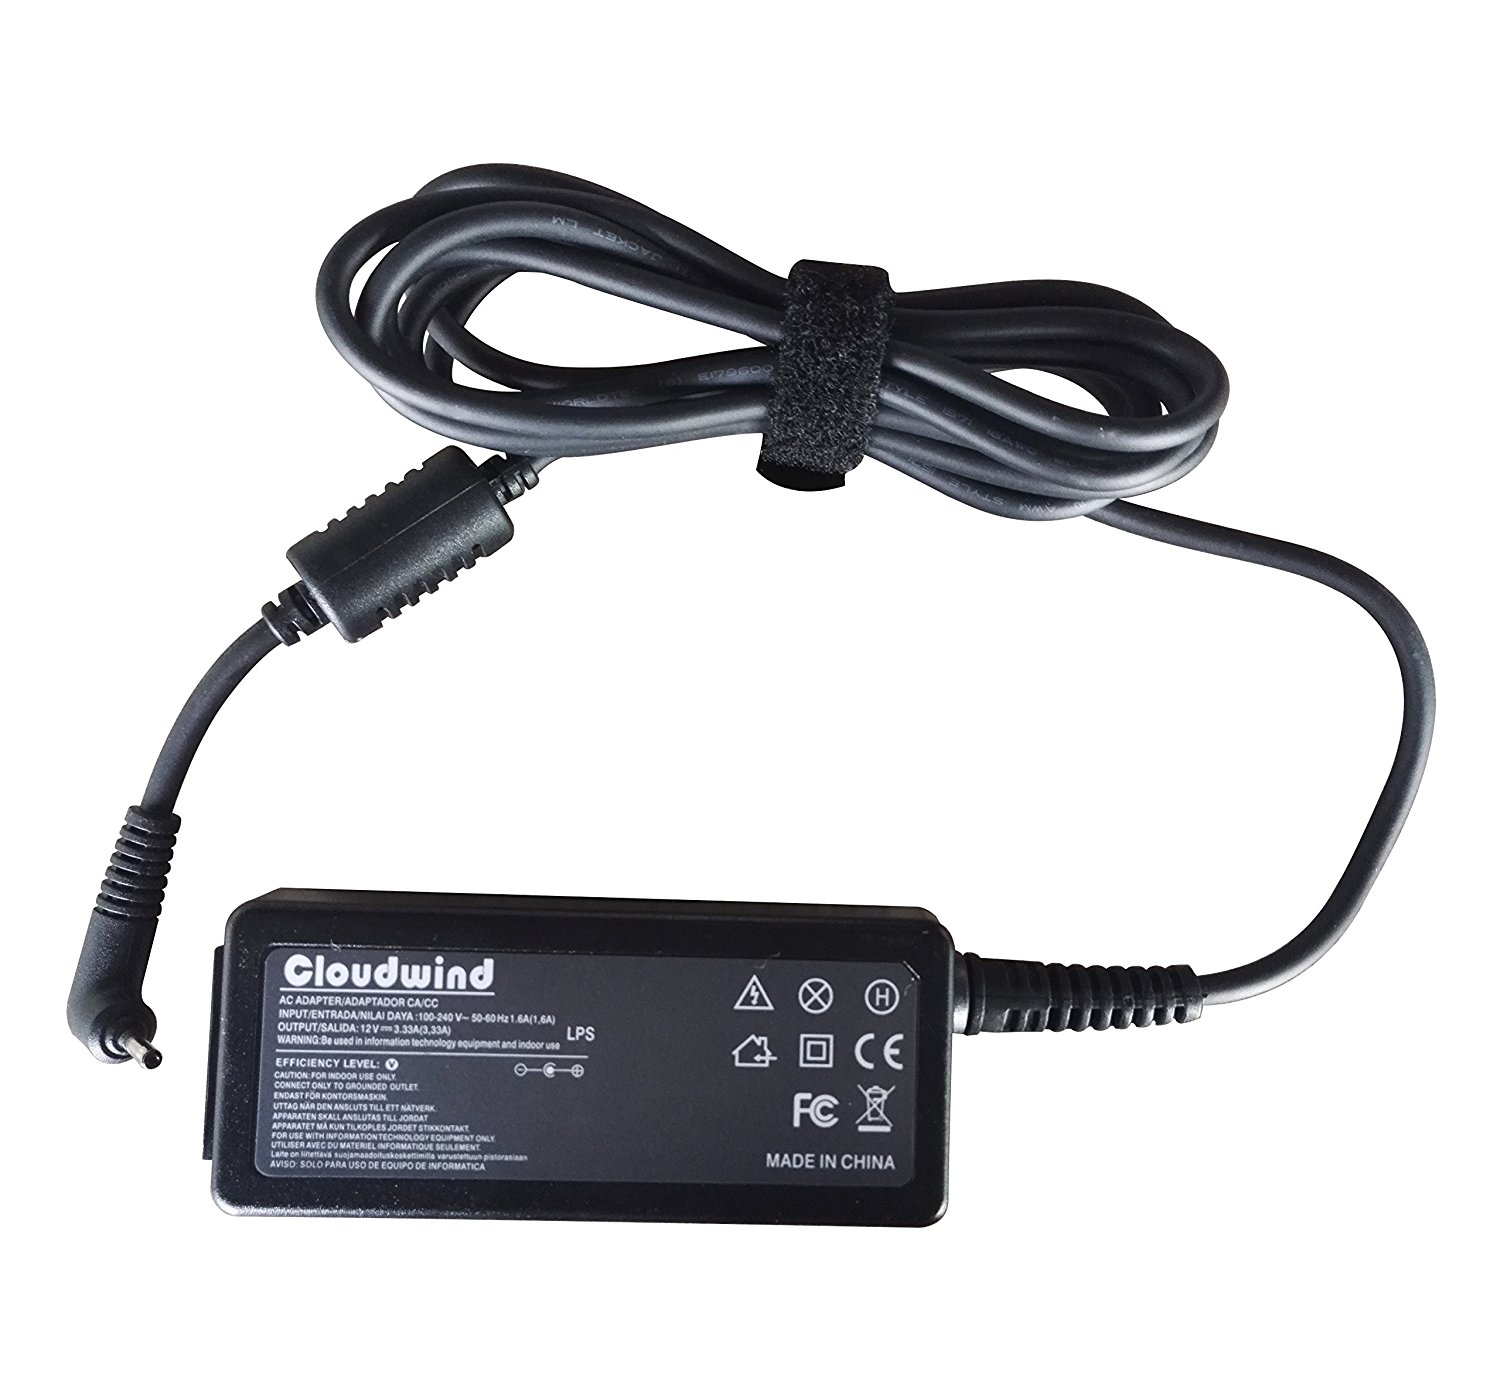 Cloudwind 12V 3.33A 40W Replacement AC Adapter Charger for Sumsung Laptop Models: Samsung ATIV Smart PC Tab 3, 5, 7 Pro XE700T1C, 500T, XE500T1C, 300T, XE300TZC; Ativ Book 9 NP930X2K